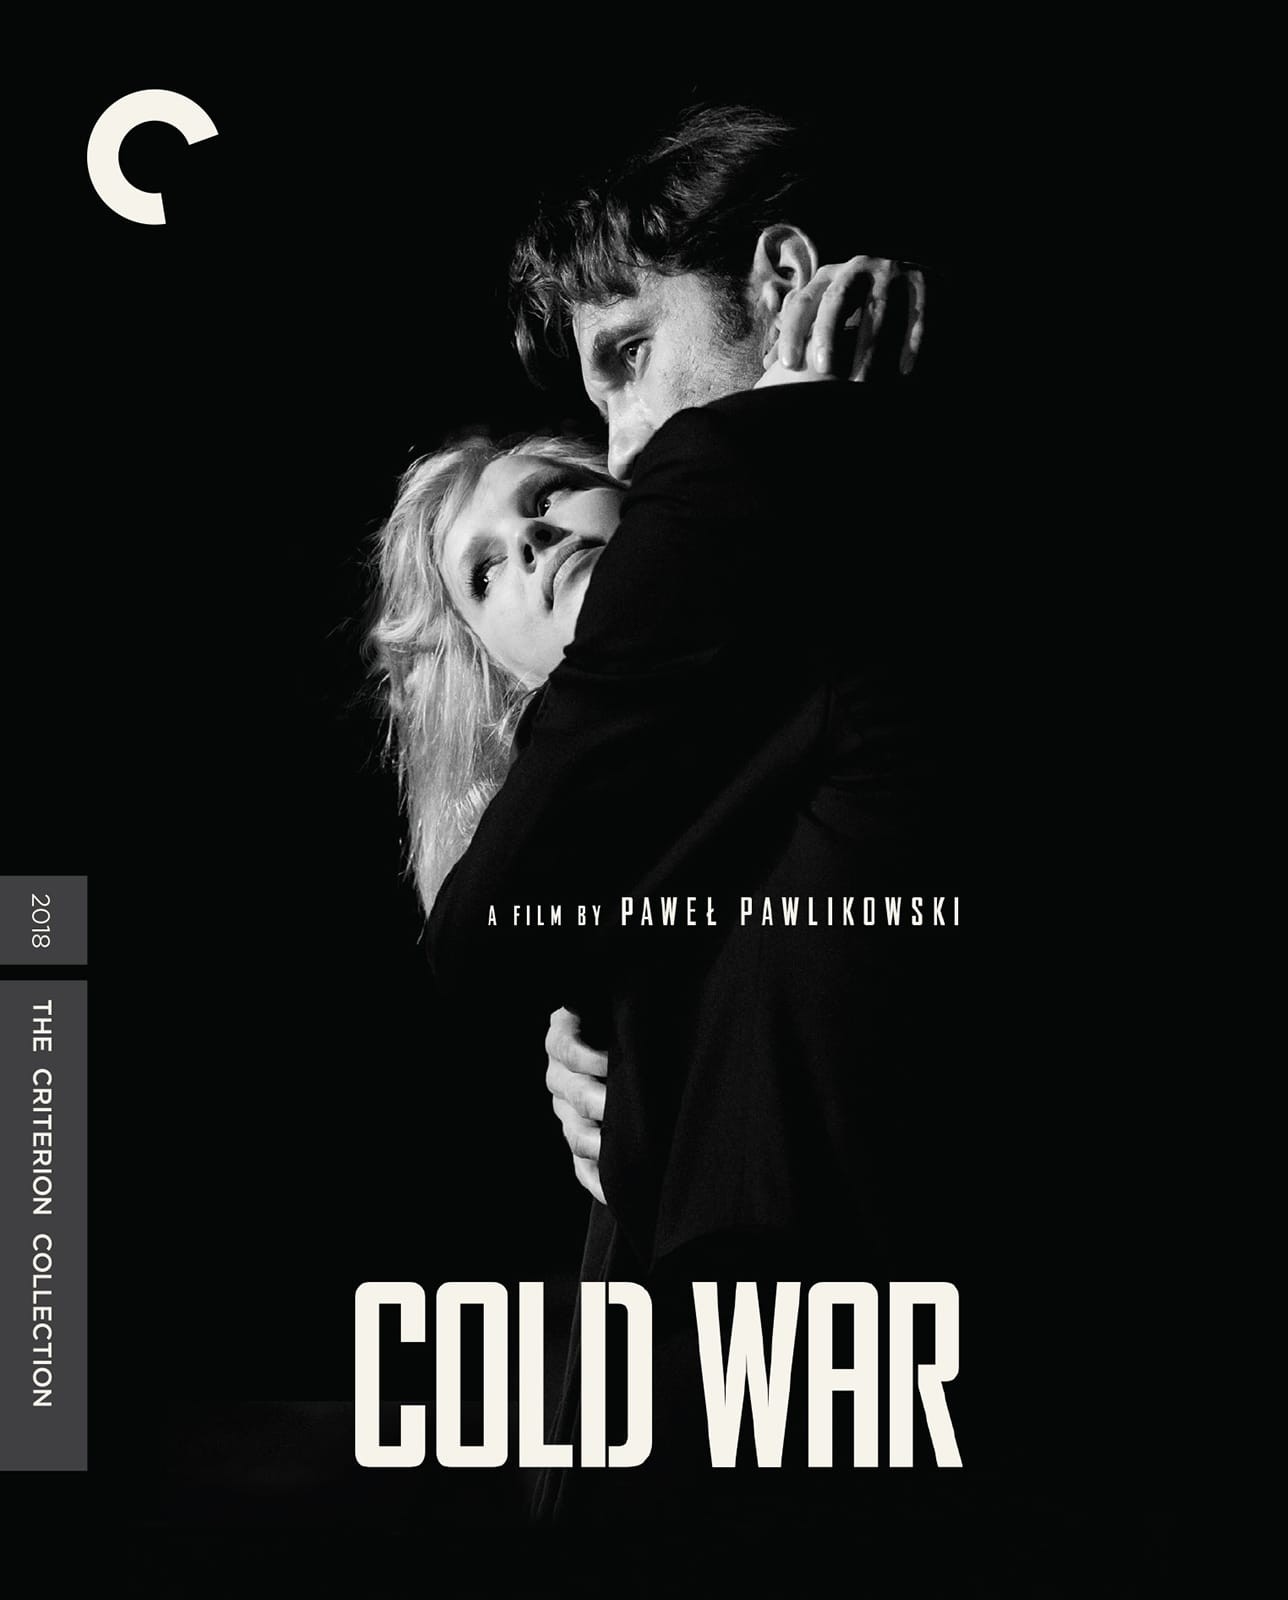 Cold War (2018) | The Criterion Collection